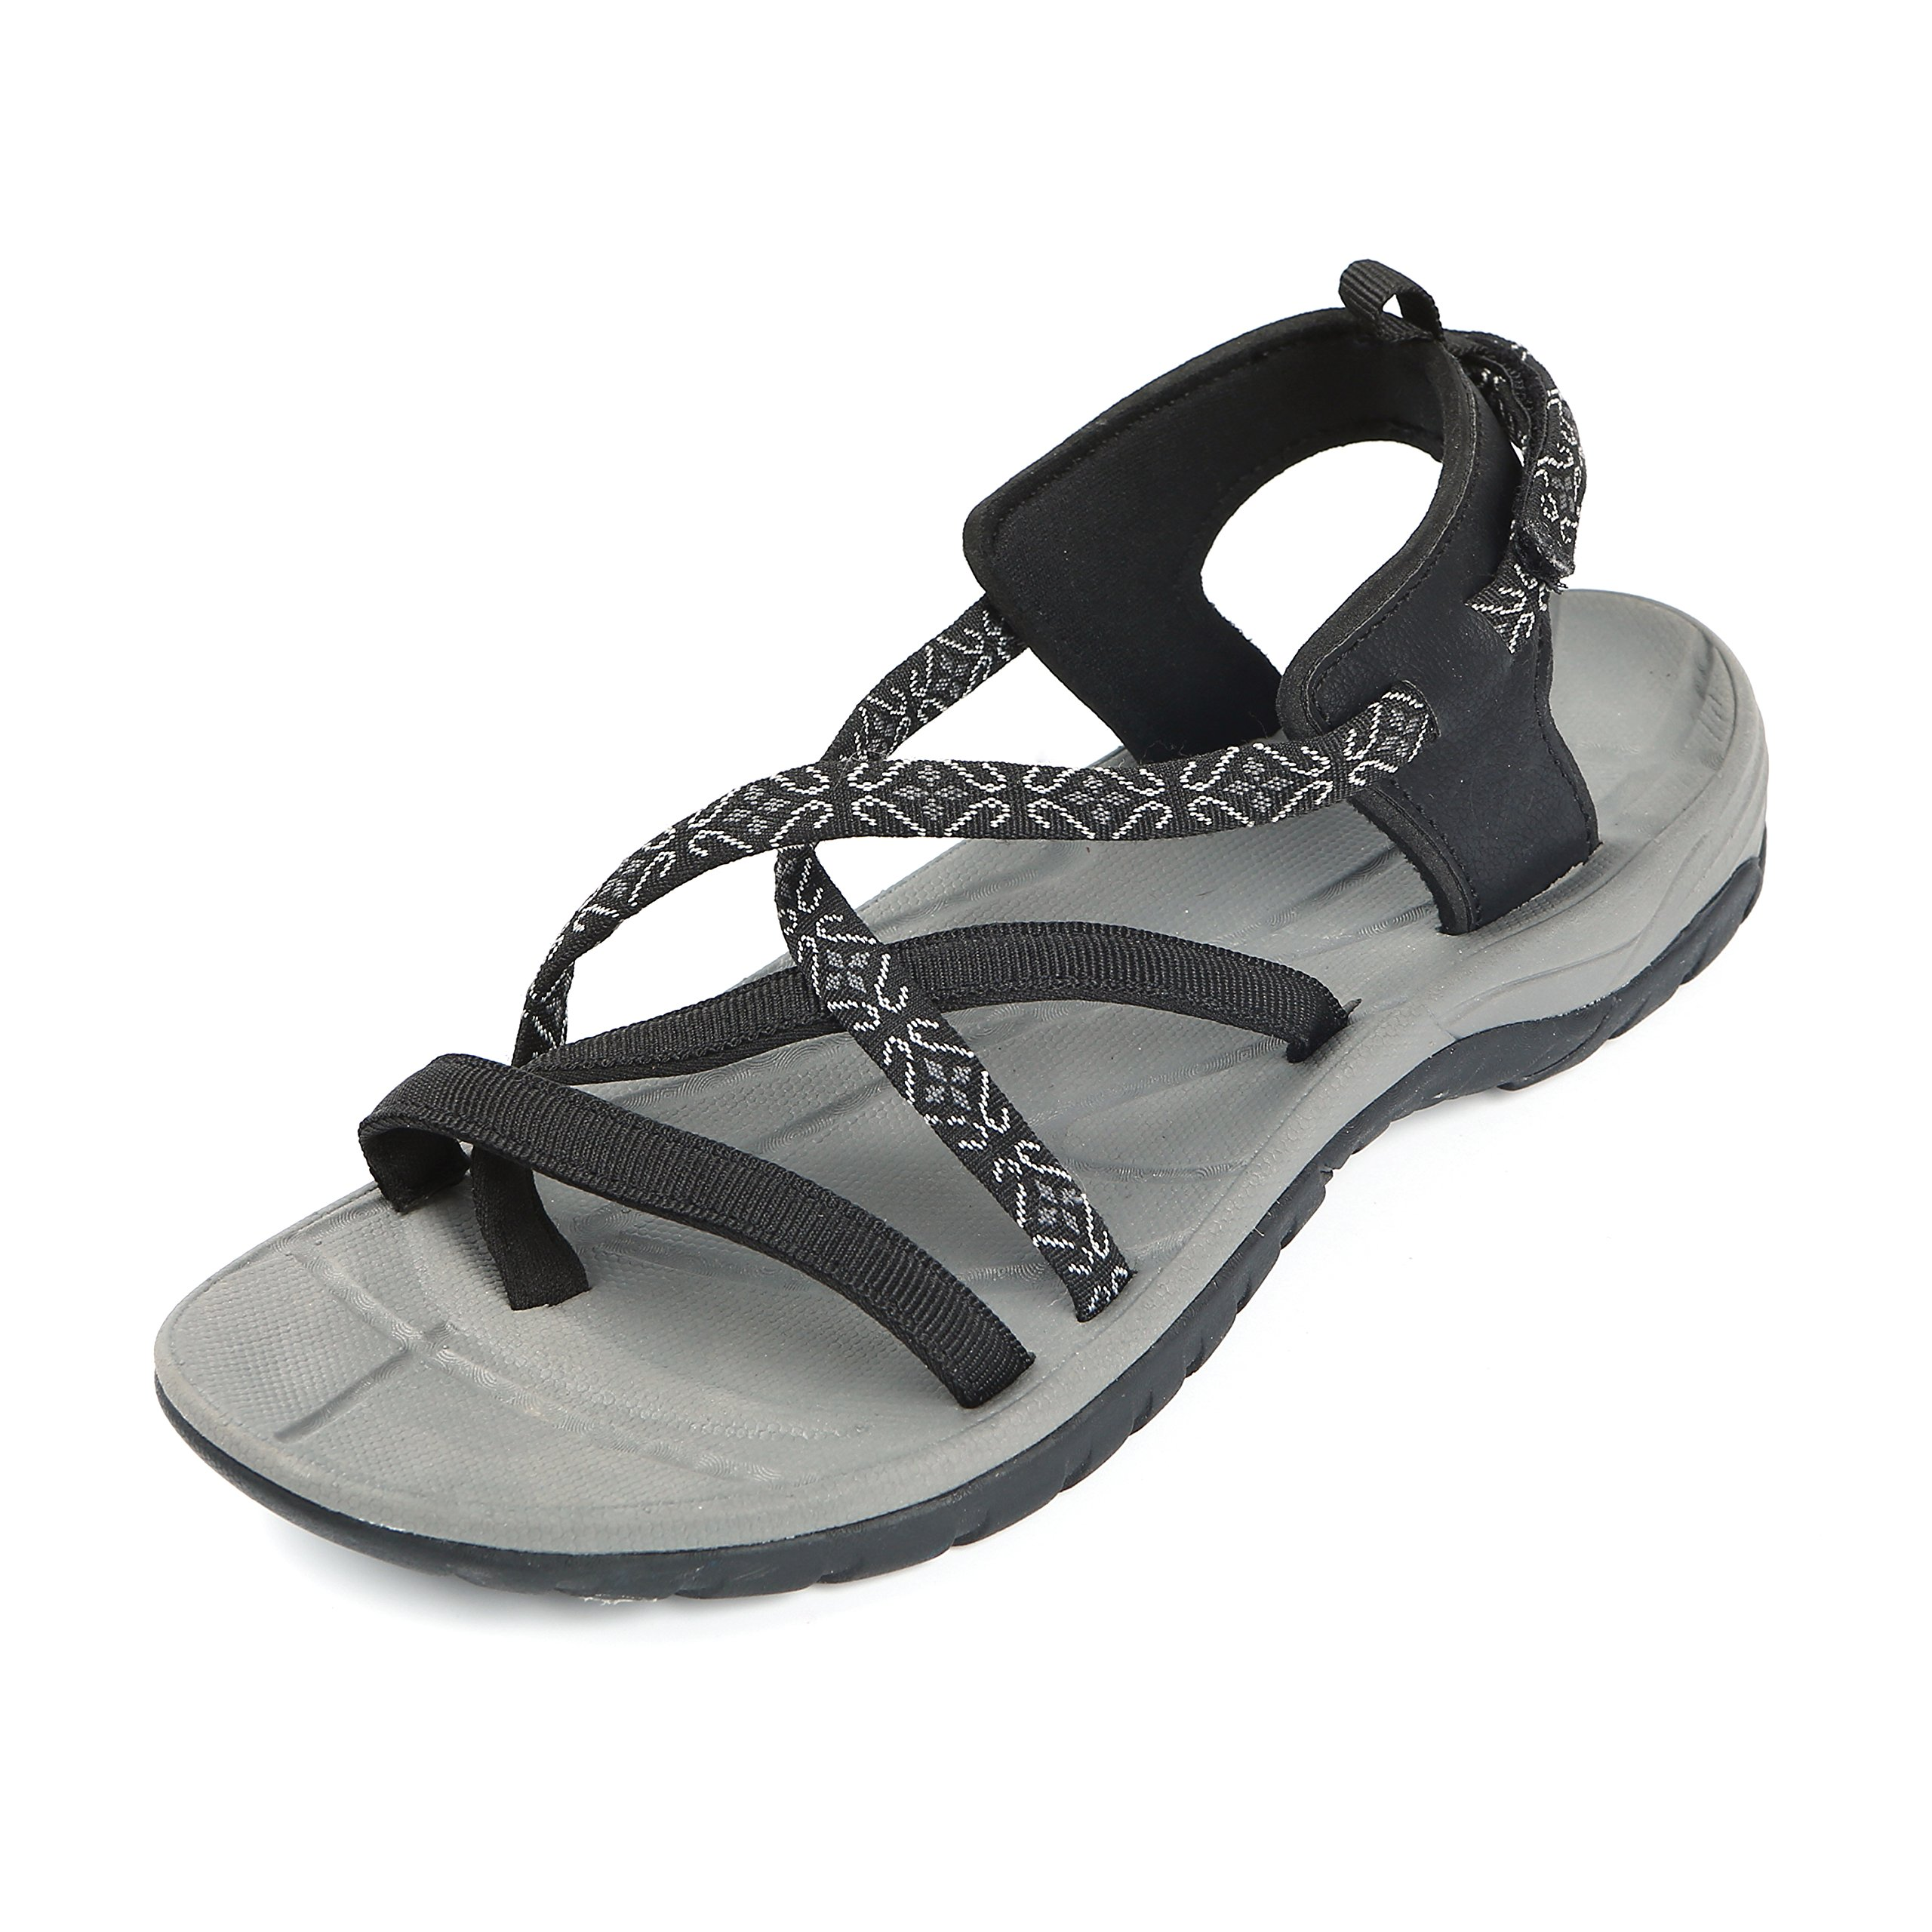 Northside Women's Covina Sandal, Black/Gray, 9 B(M) US